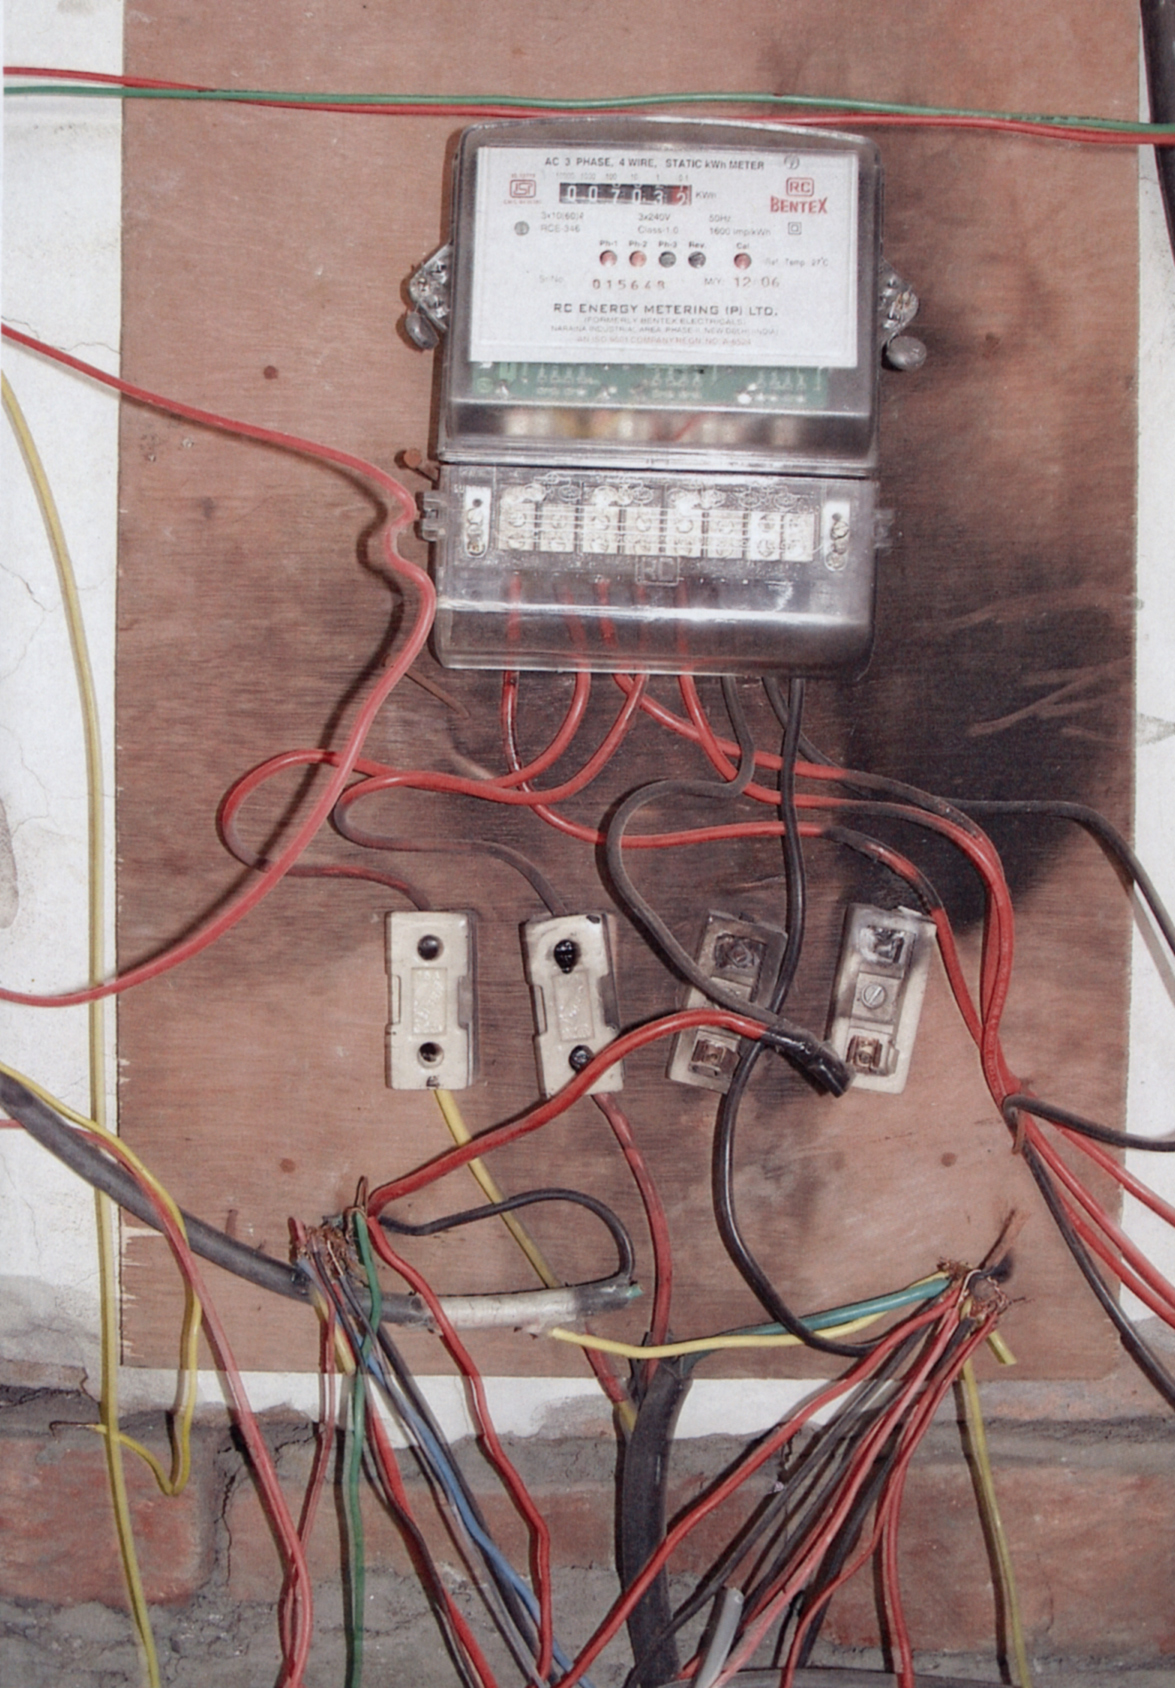 hight resolution of commenting on the photo s submitted e t features editor vitali vitaliev said the wiring regulations have kept generations in the uk safe from fires and